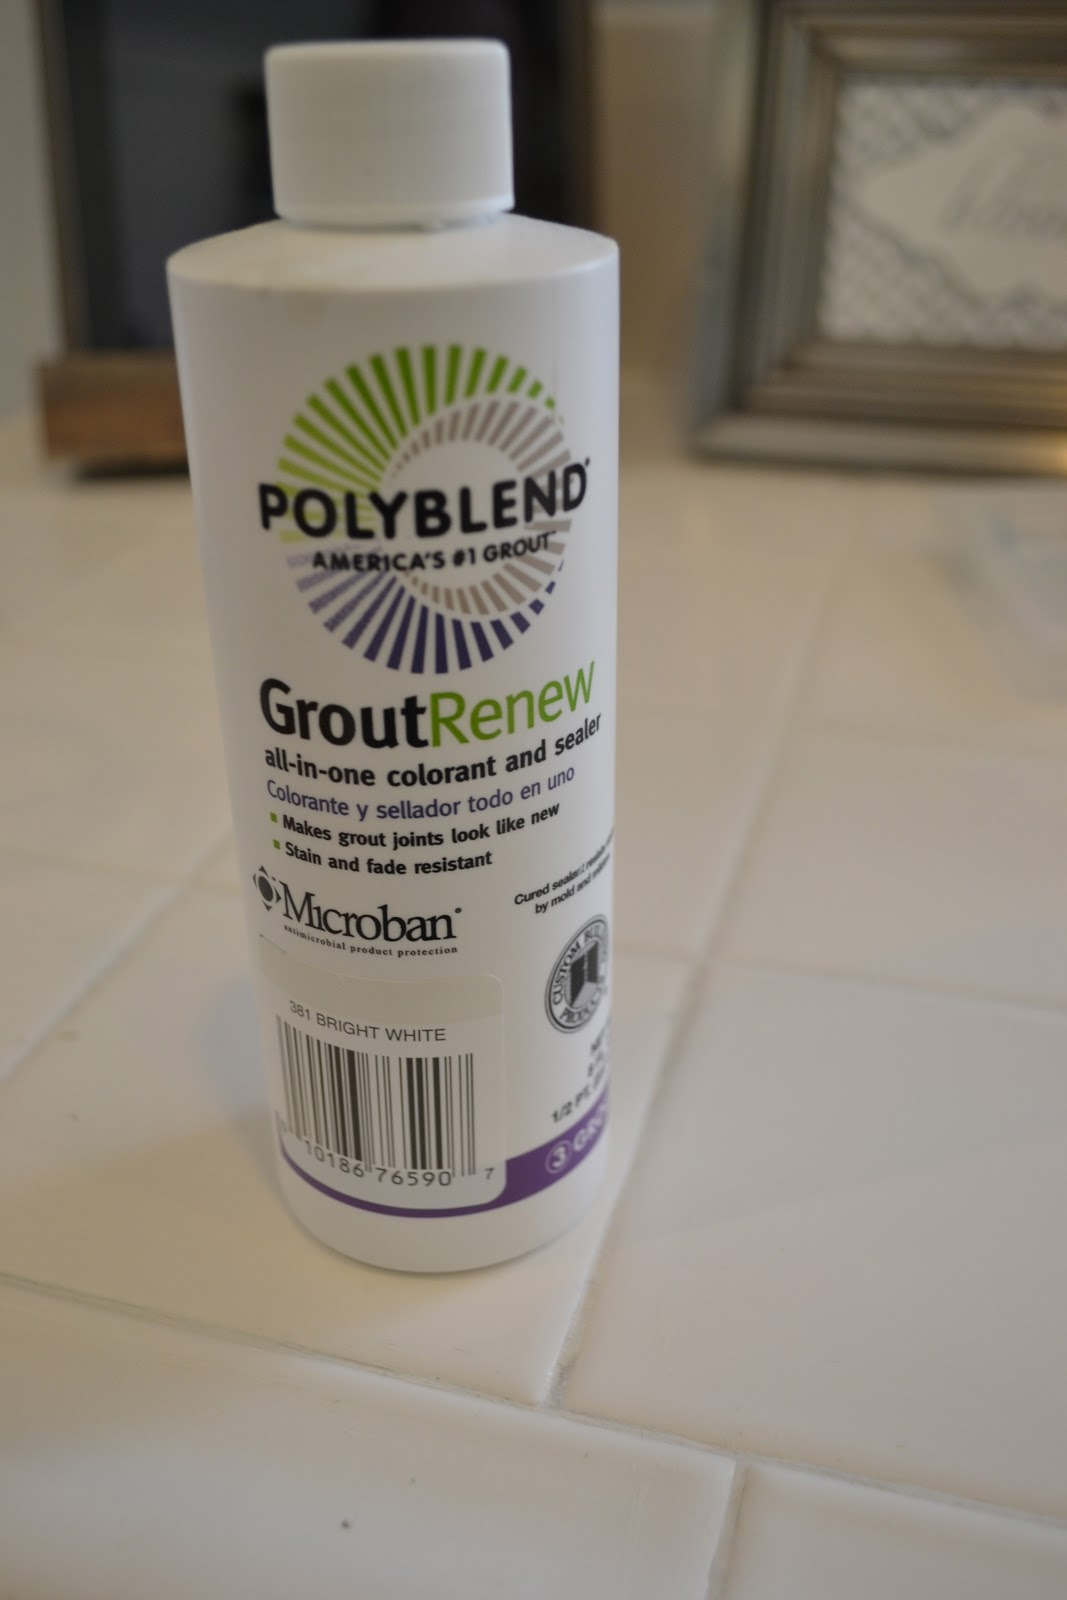 Queen of kings polyblend grout renew review for How to make grout white again